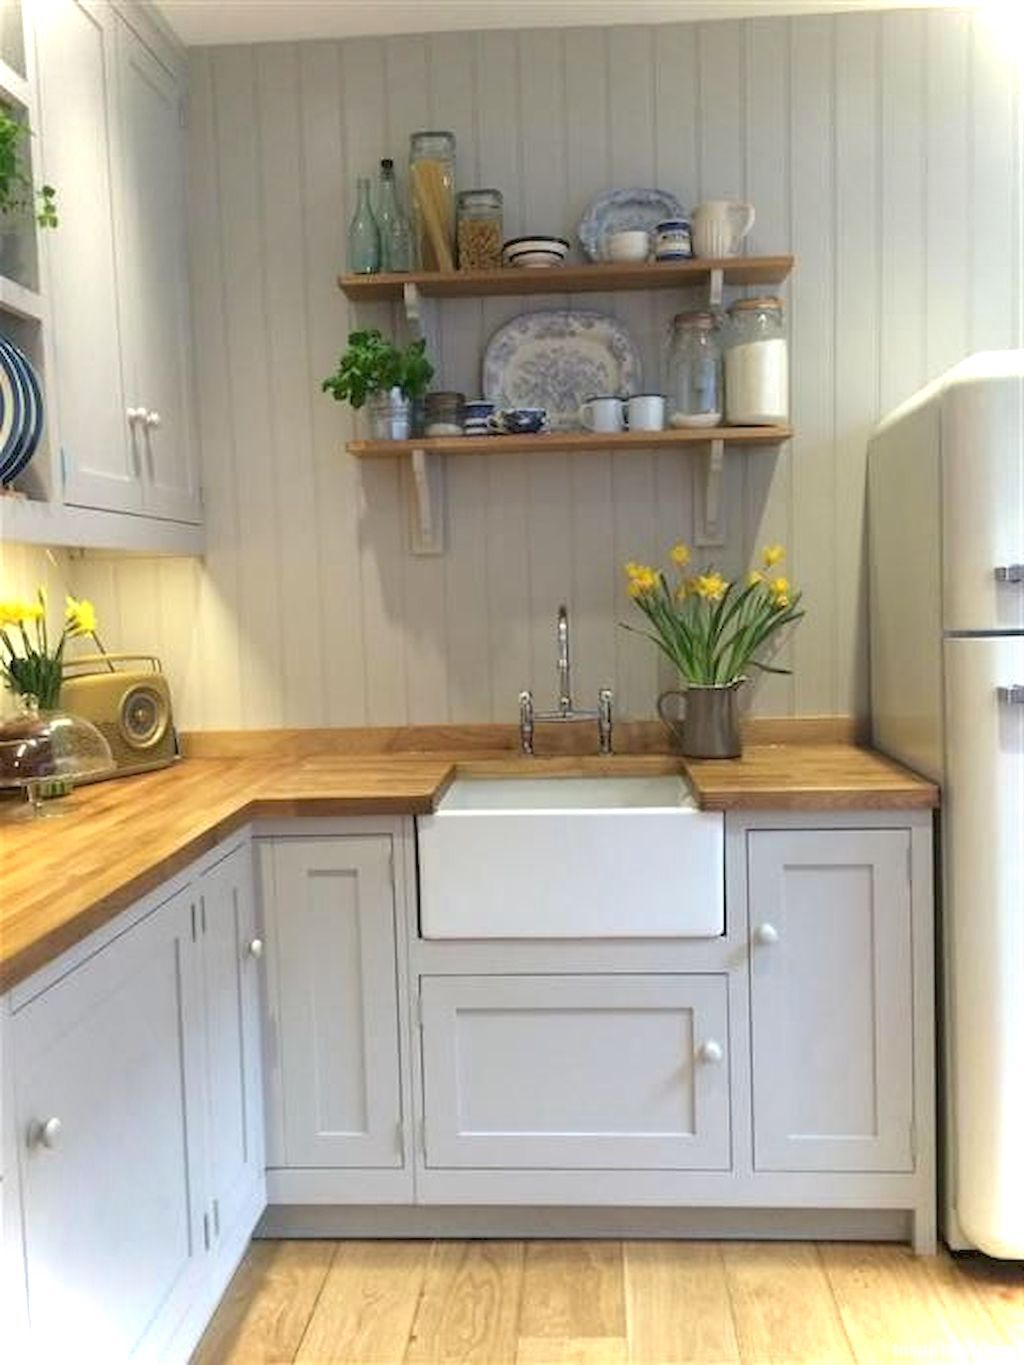 55 Genius Small Cottage Kitchen Design Ideas Small cottage kitchen